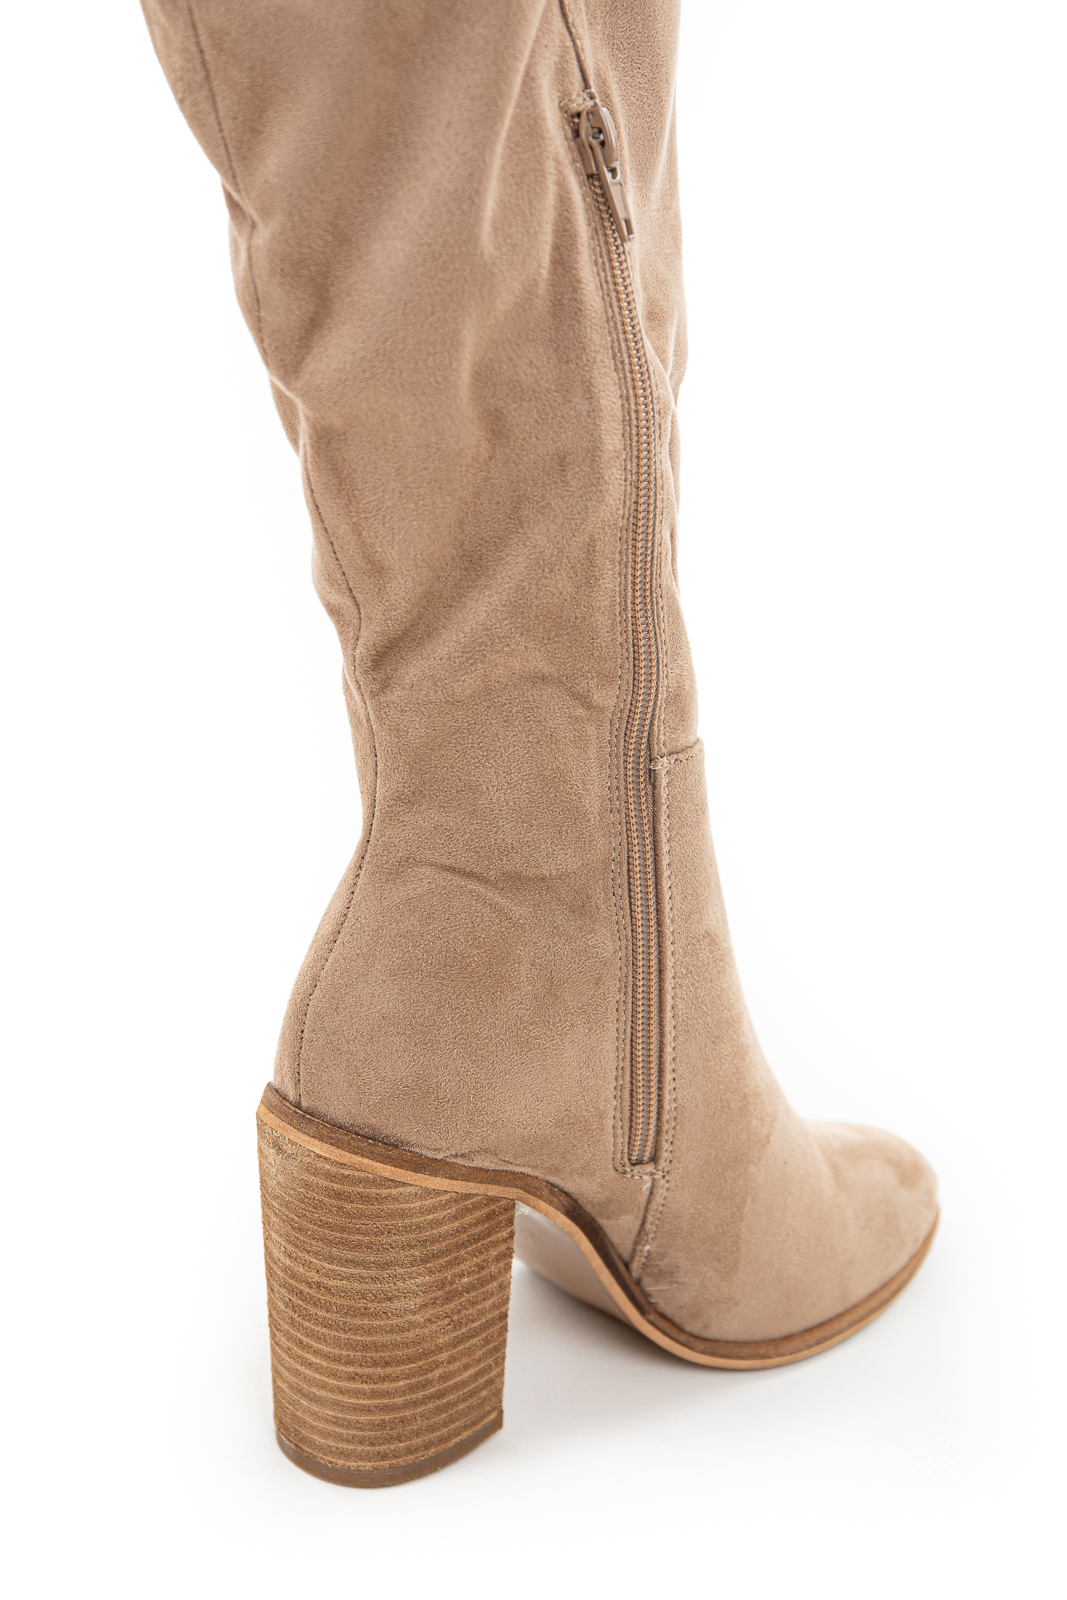 Taupe Faux Suede Tall Heeled Boots